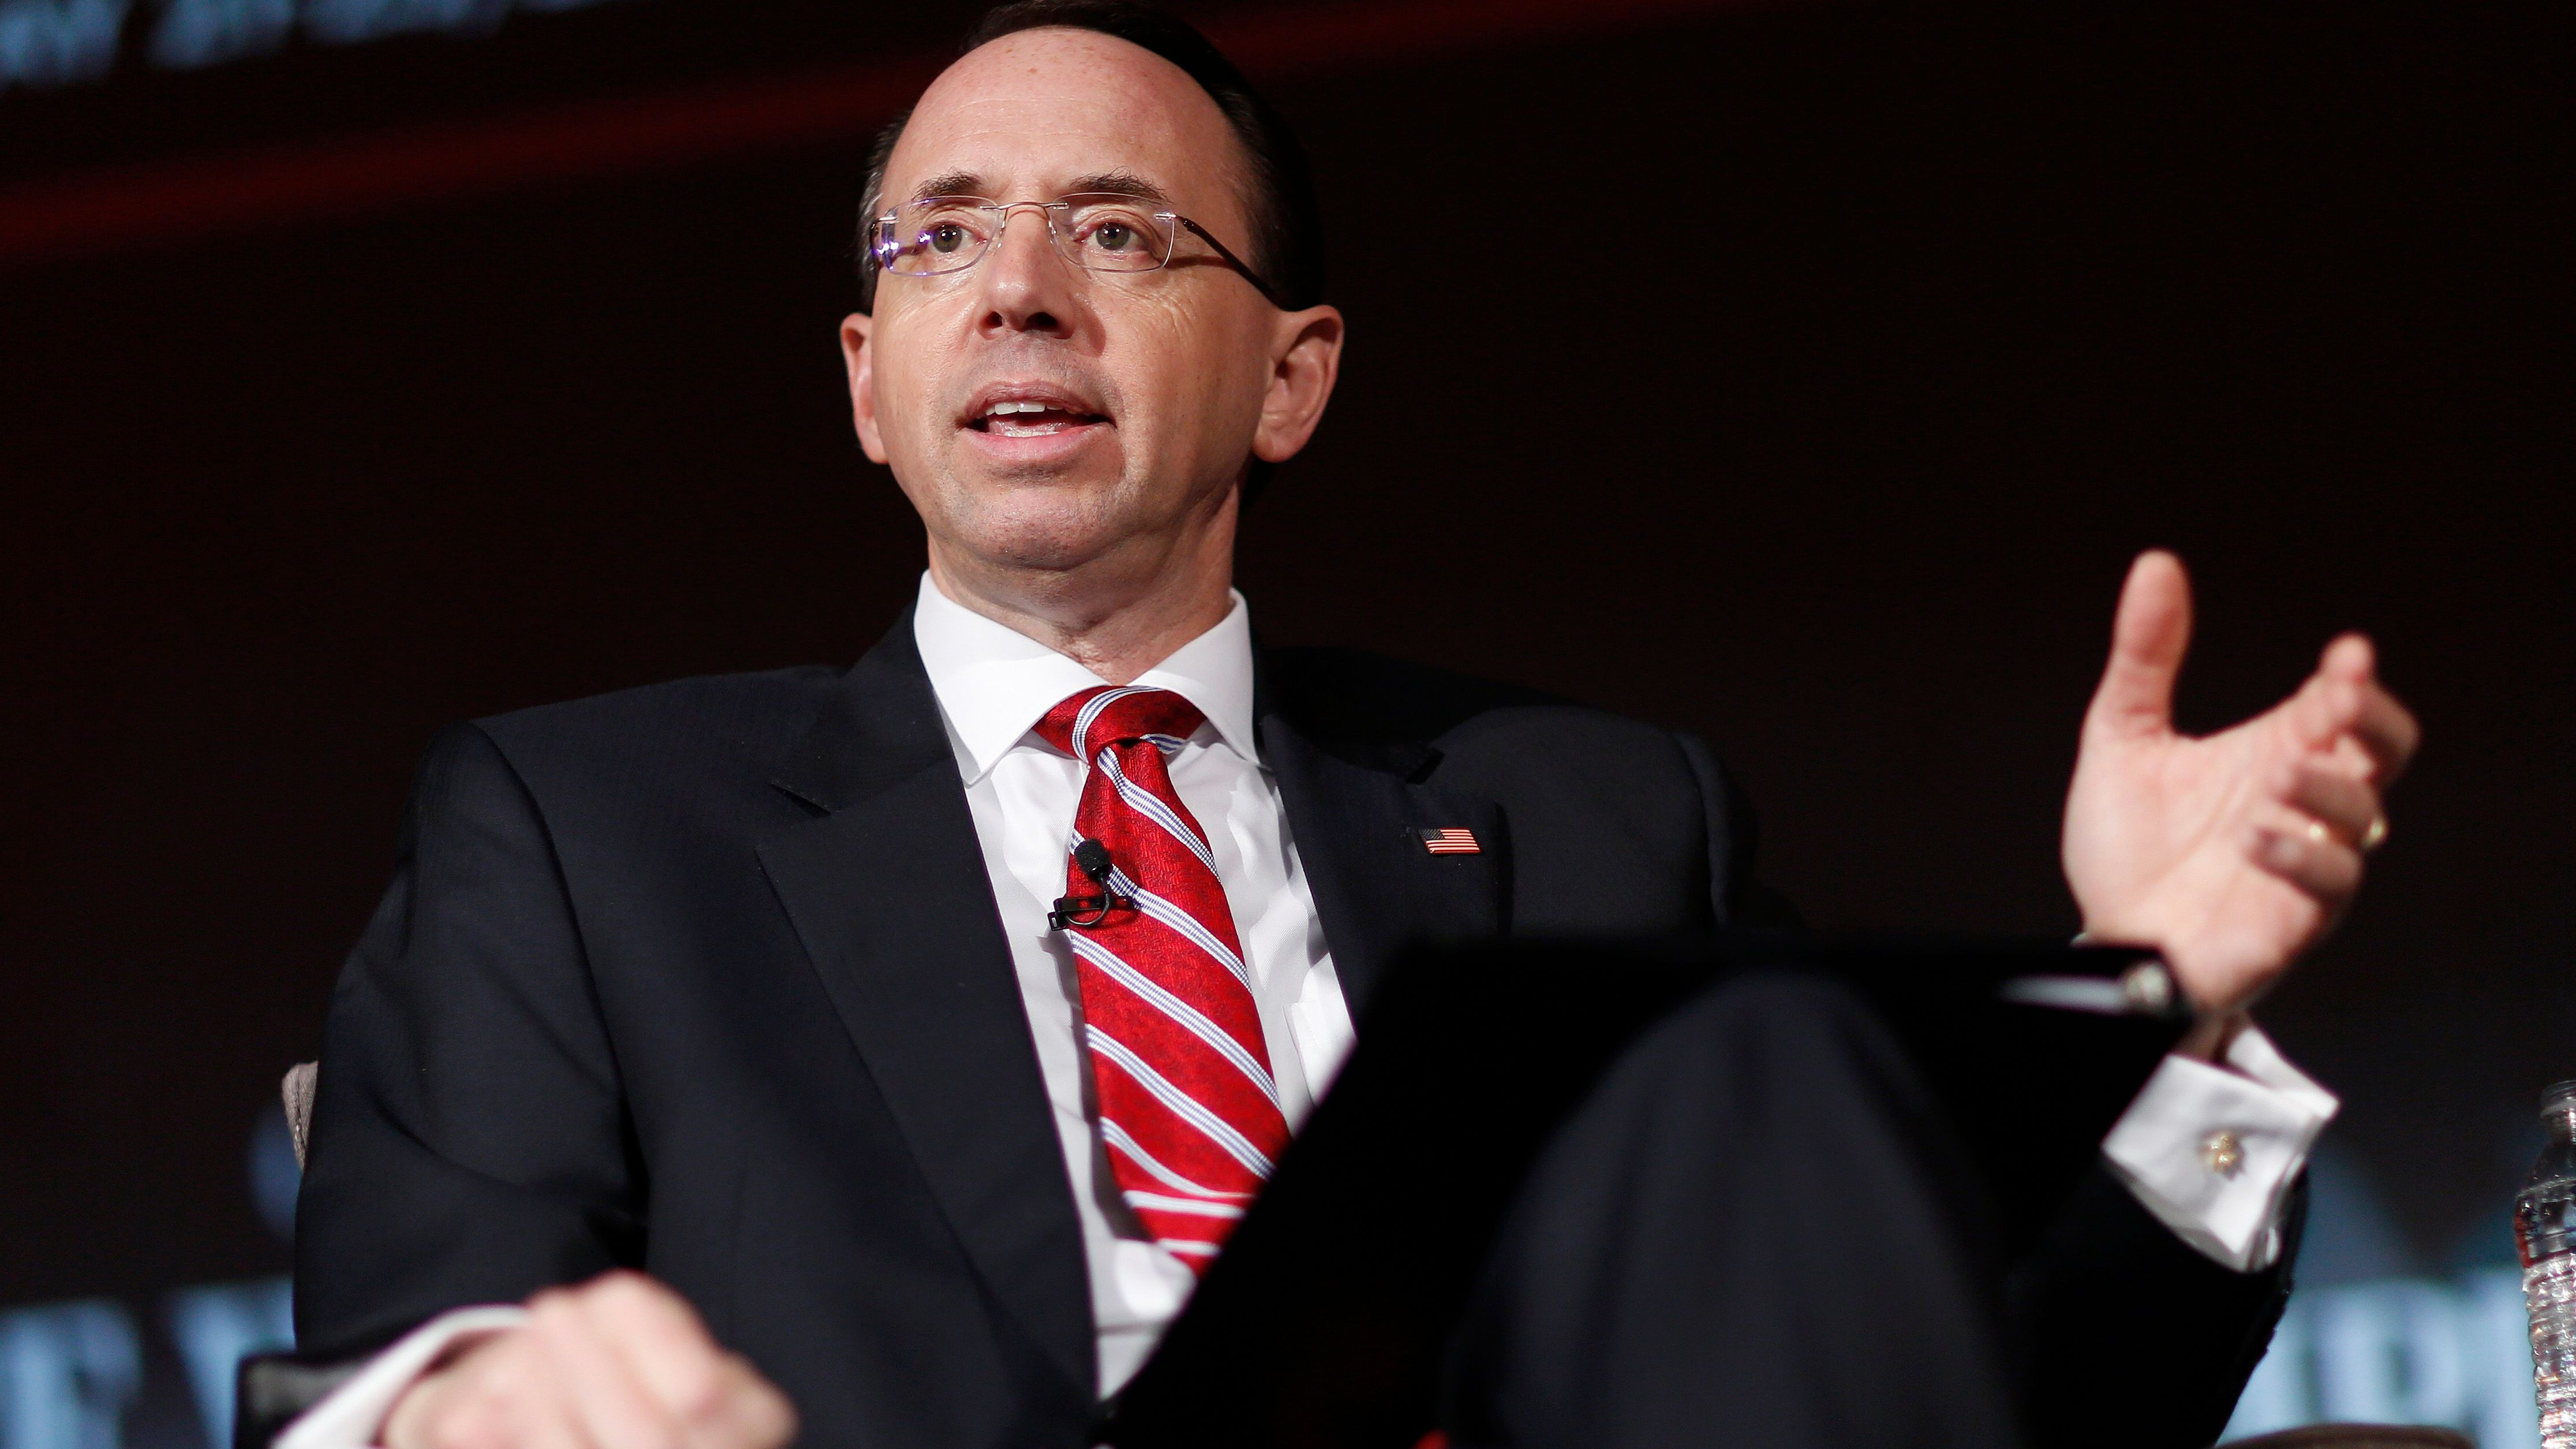 U.S. Deputy Attorney General Rod Rosenstein speaks at the Compliance Week 13th Annual Conference in Washington, U.S., May 21, 2018. REUTERS/Joshua Roberts - HP1EE5L14C20S